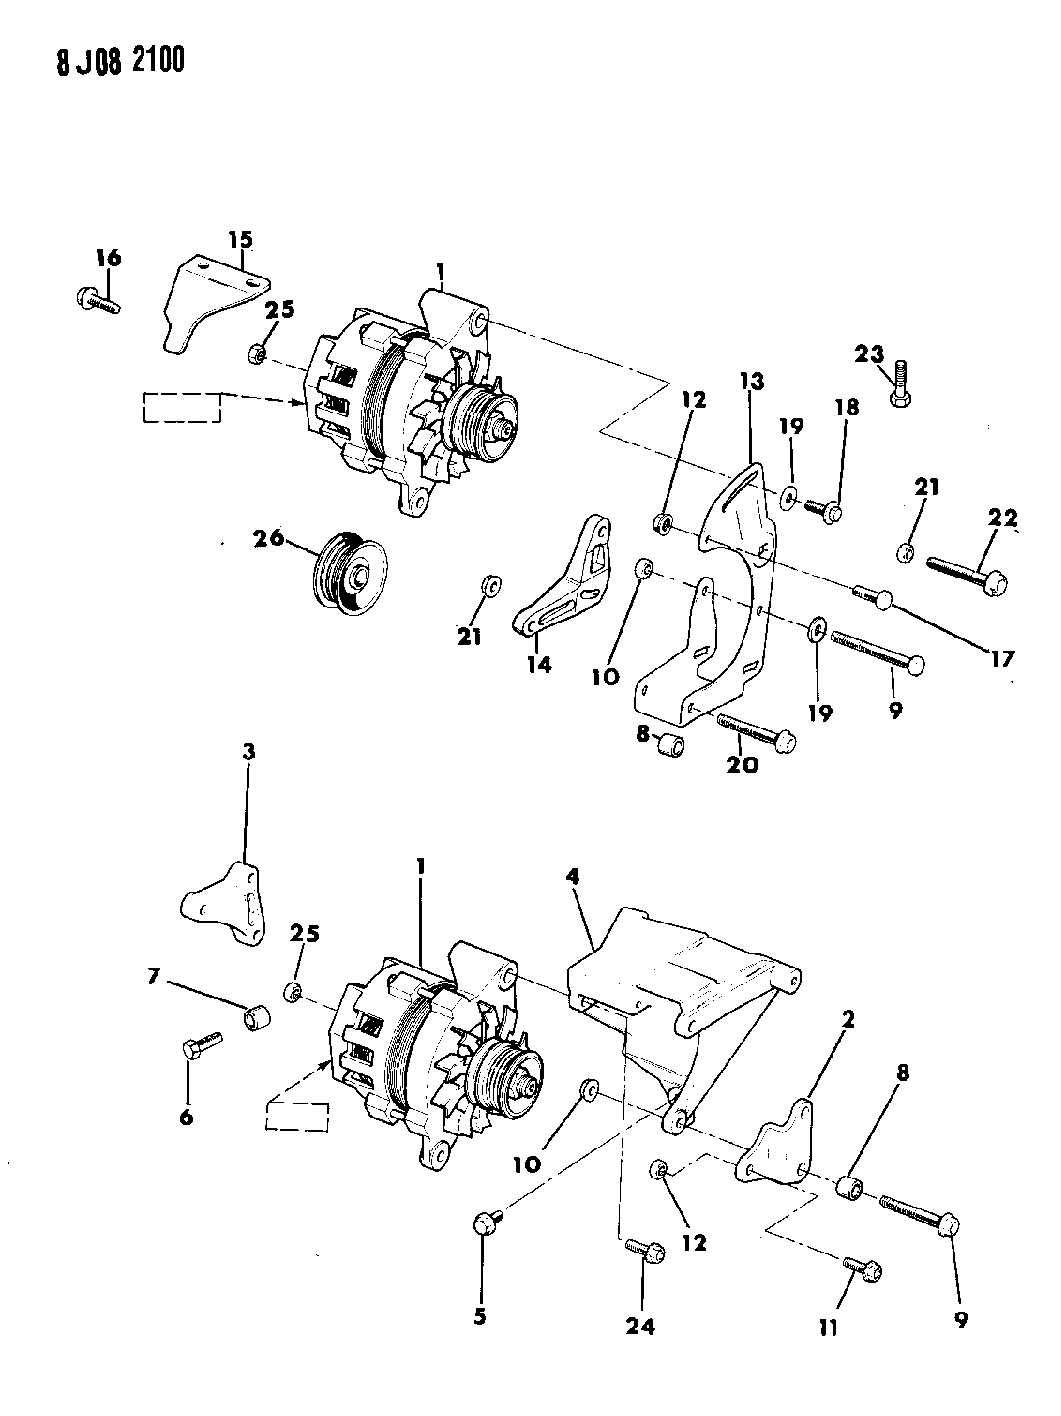 Jeep Cherokee Alternator And Mounting 2 5l Engine